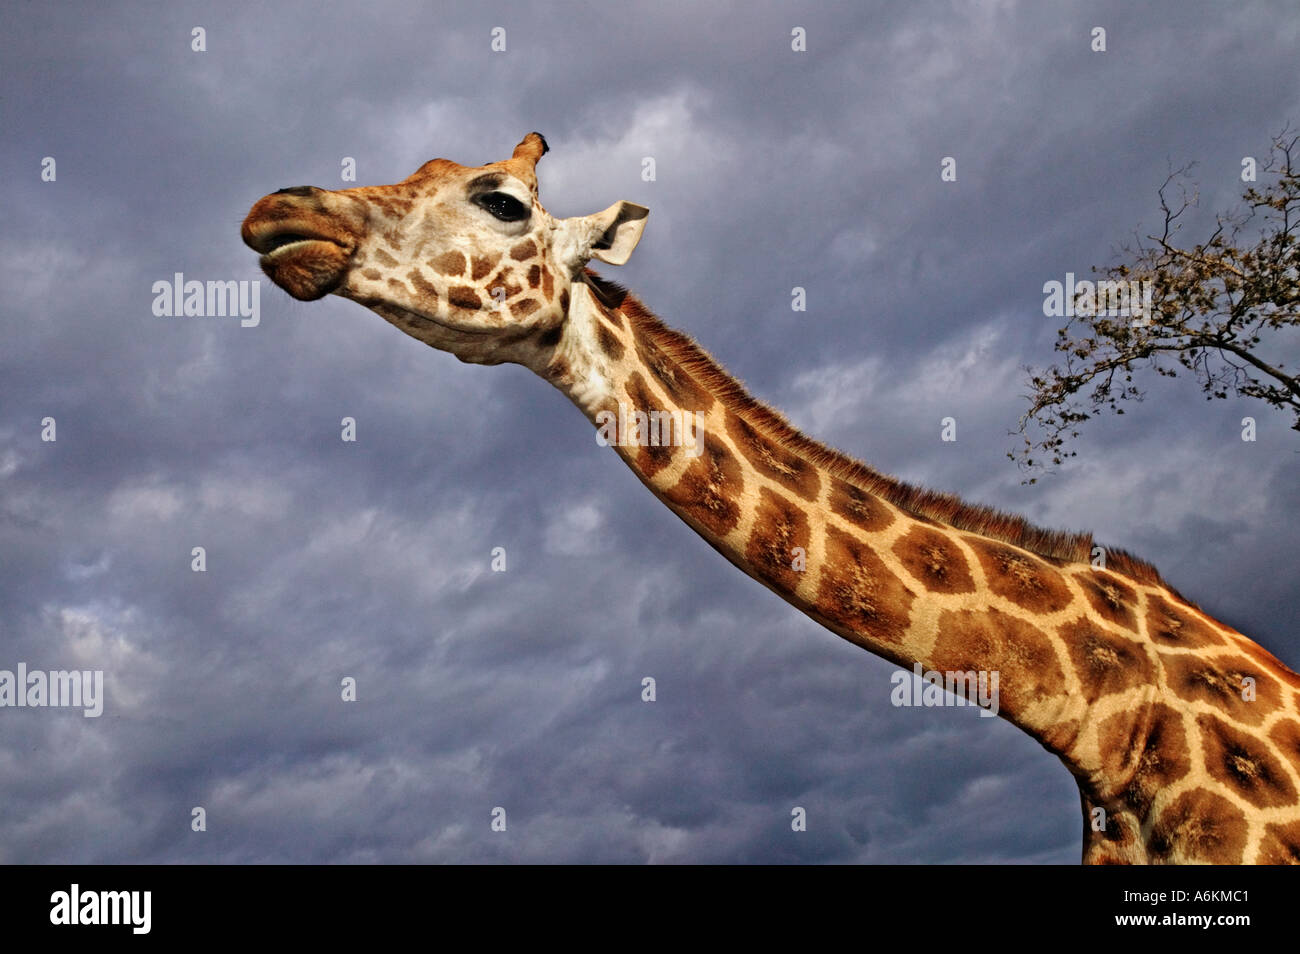 Rothschild Giraffe Giraffa camelopardalis rothschildi Portrait of adult with stormy sky in background Kenya - Stock Image